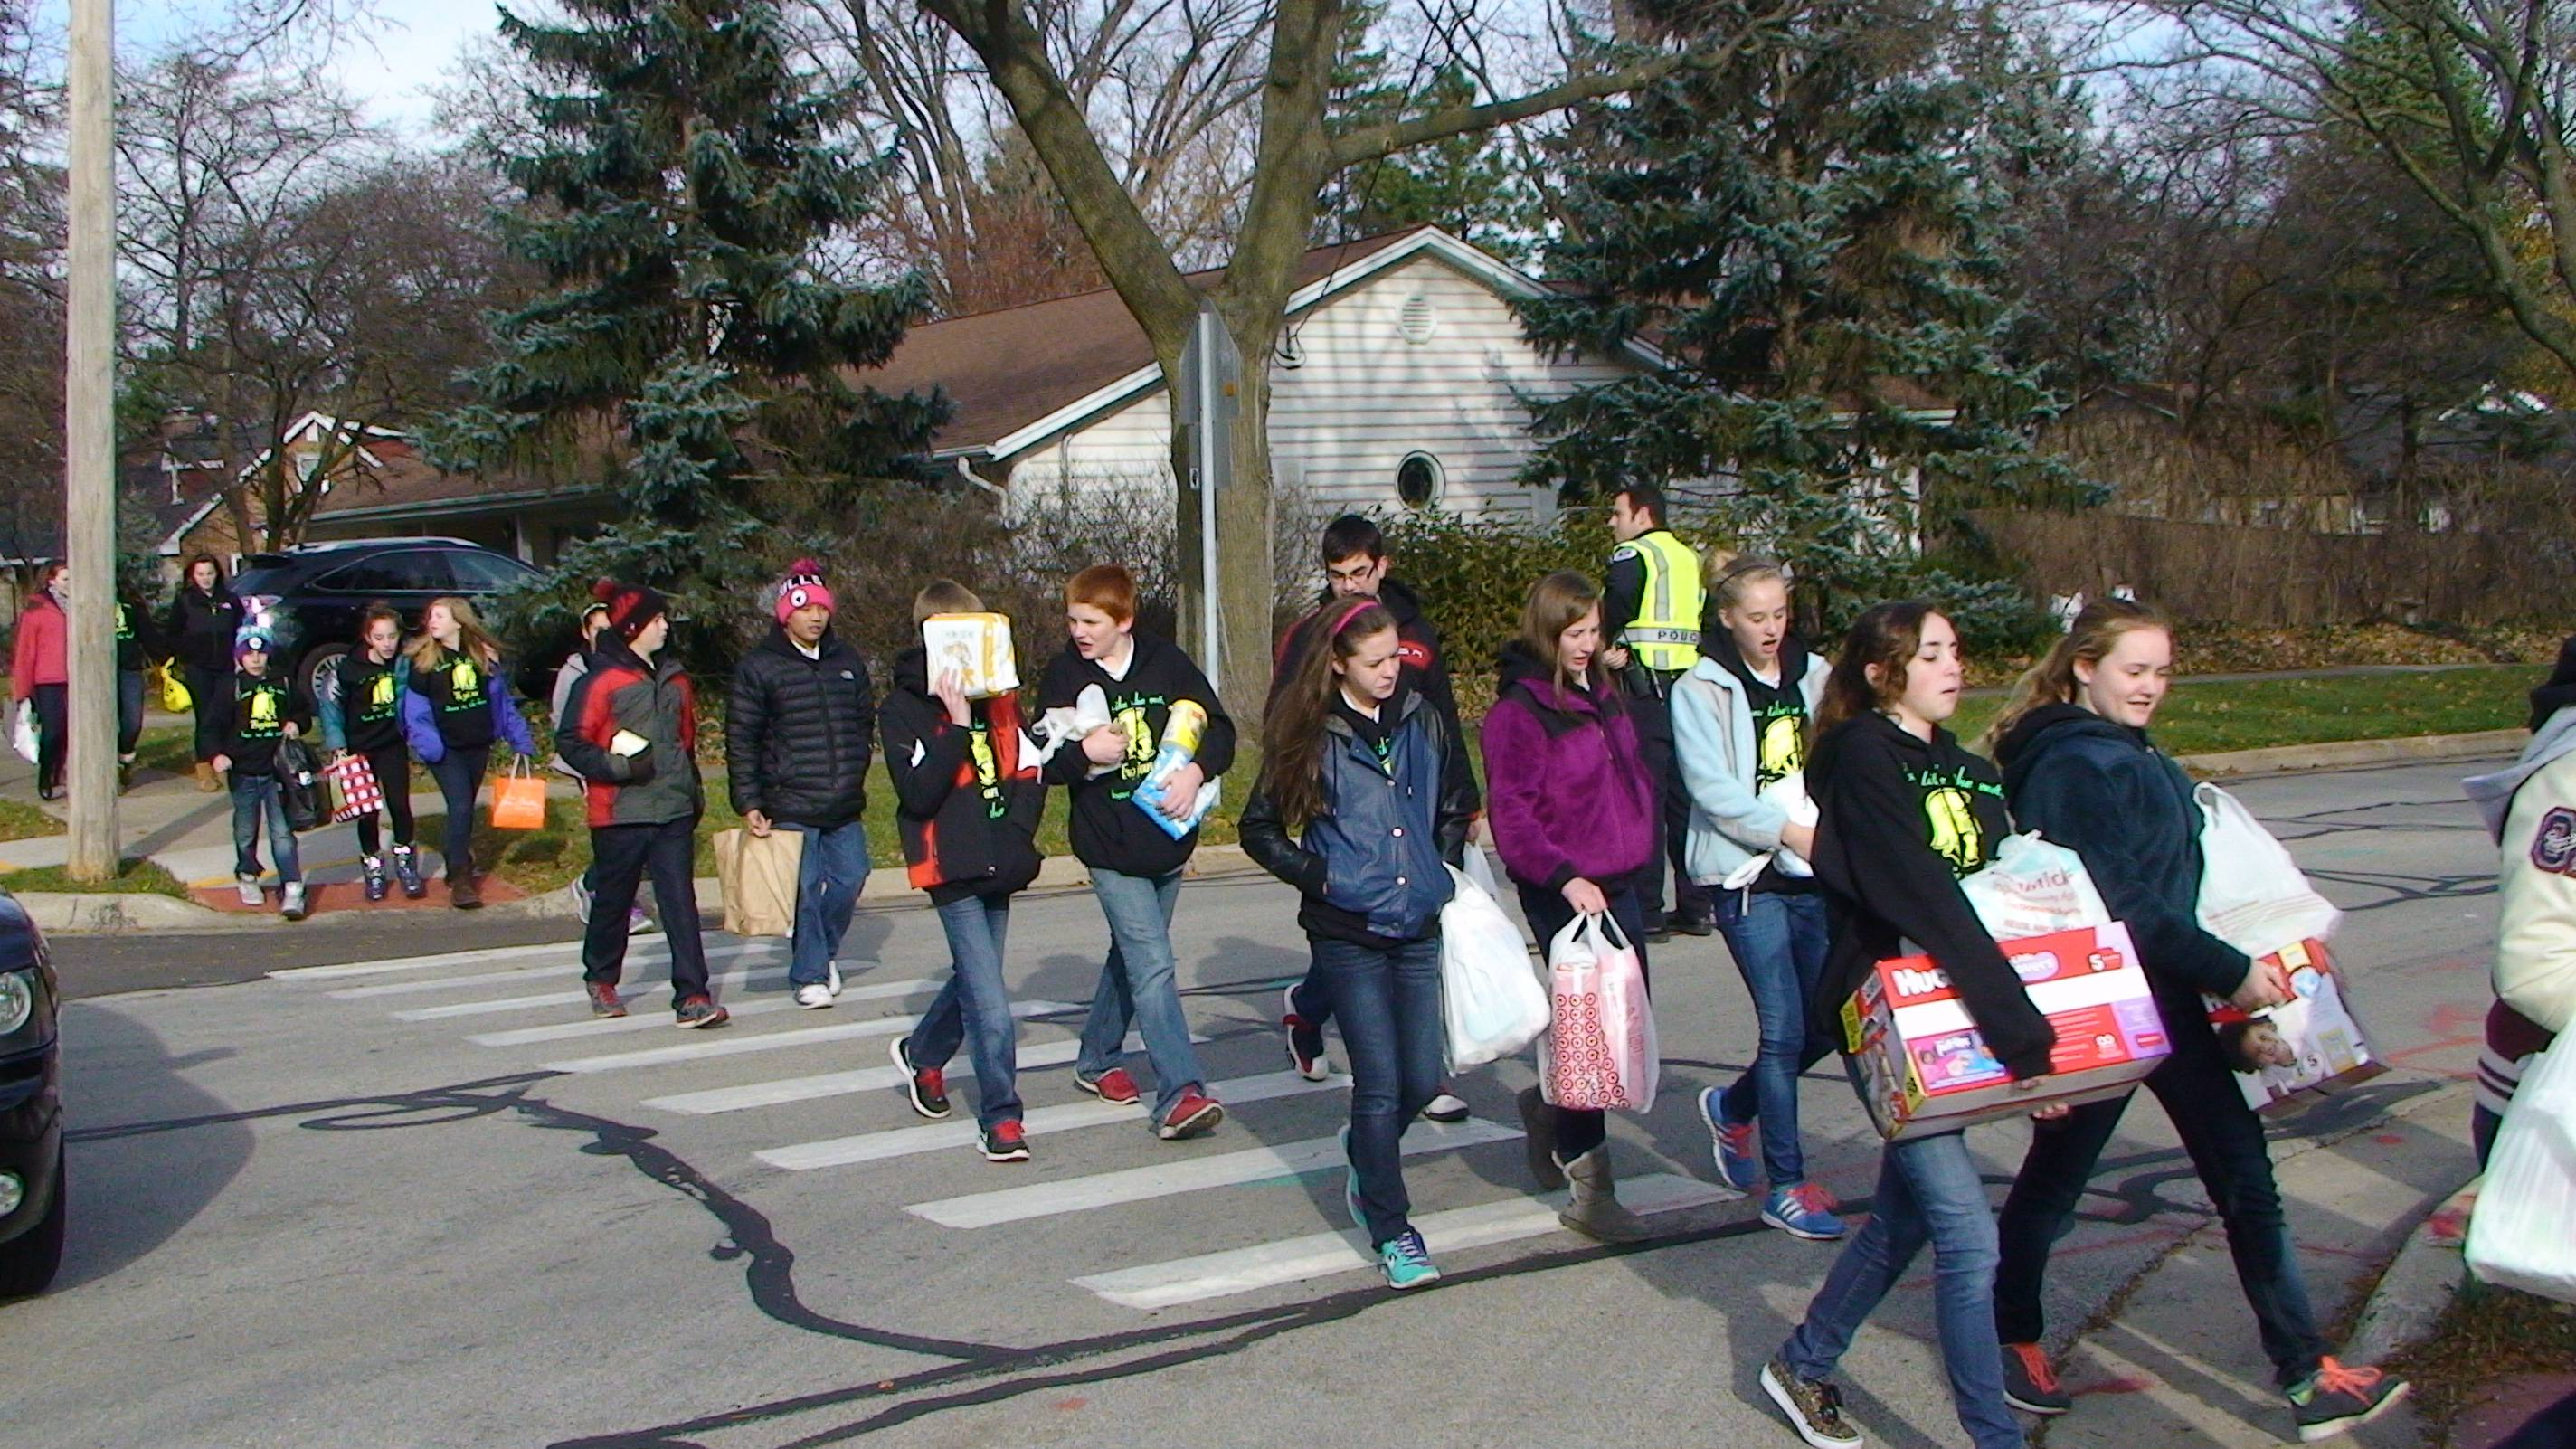 St. Theresa students and teachers walking through the streets of Palatine carrying donations to PHD's Baby & Maternity Closet